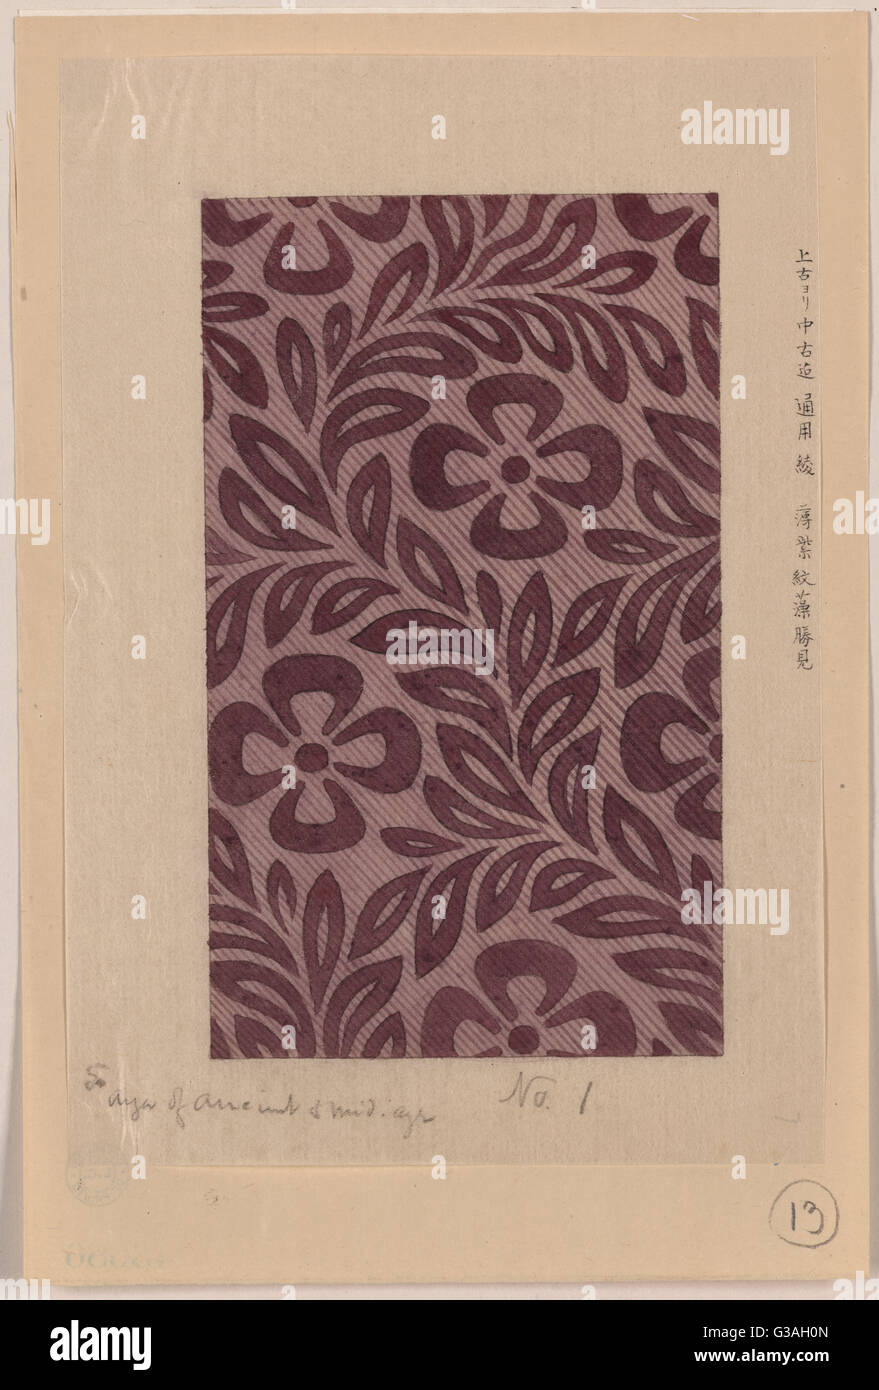 Textile design with flower motif. Date 1878?. - Stock Image